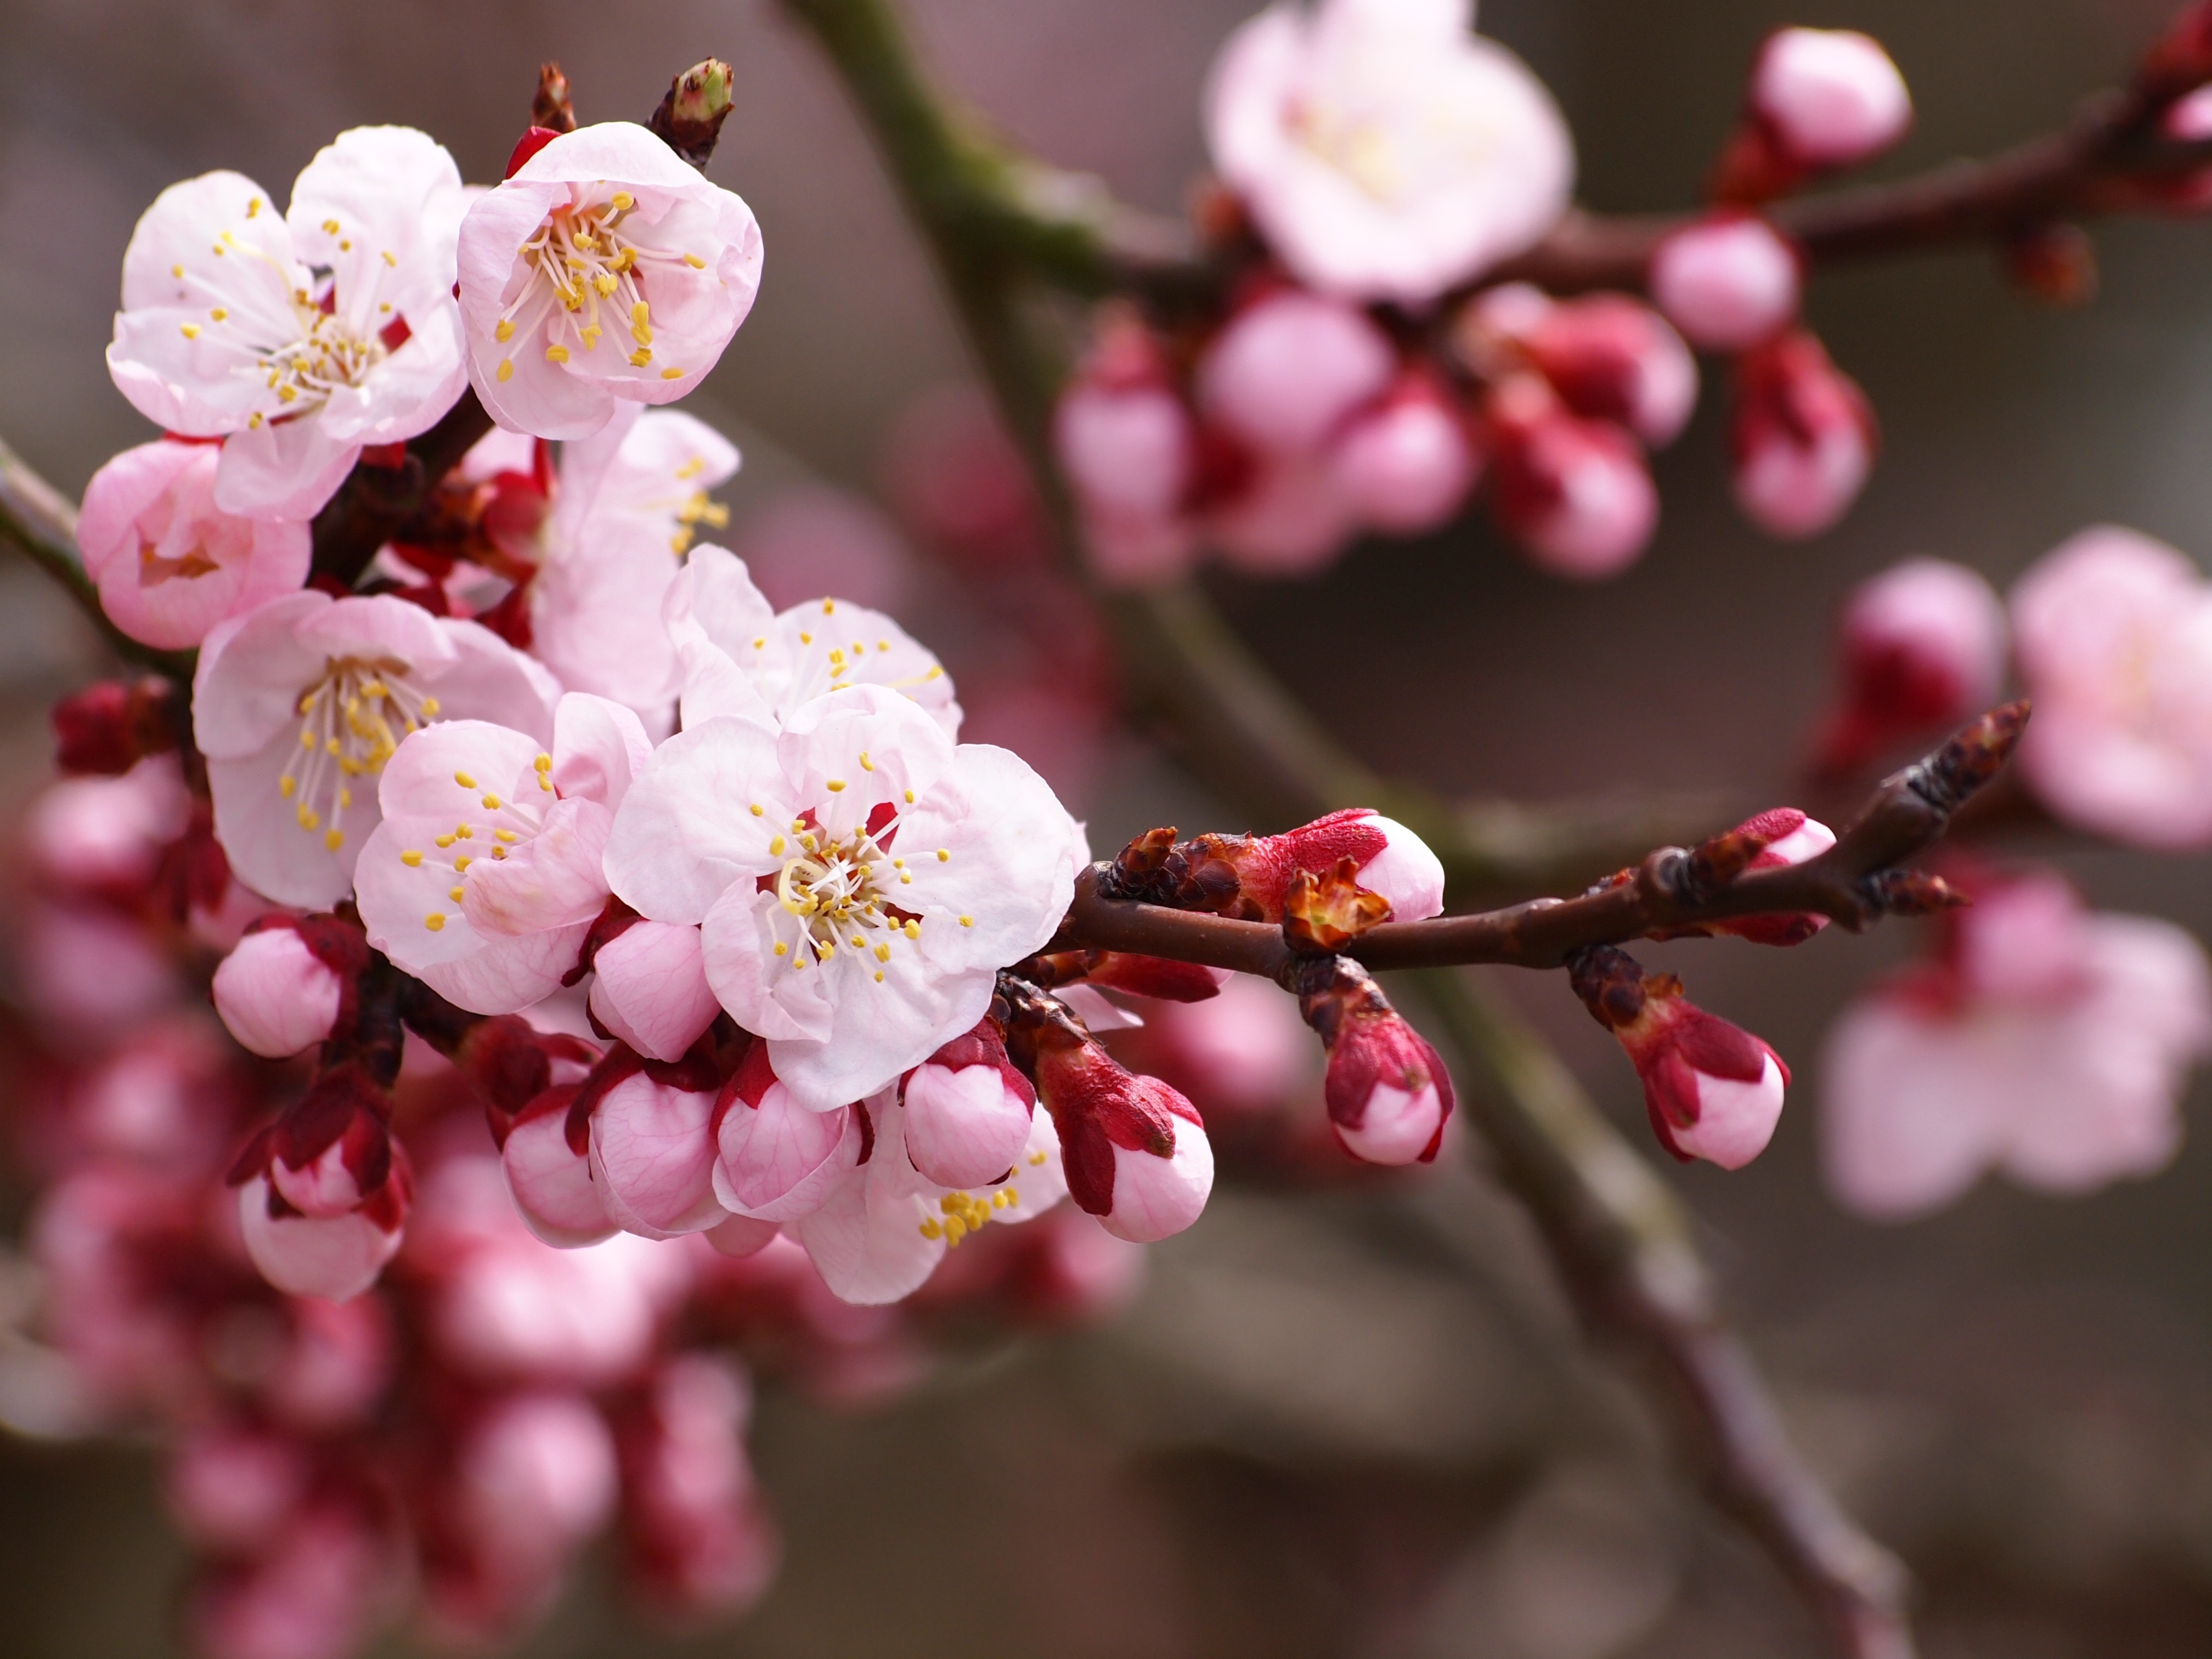 Hobby Store San Diego >> Fruit Trees San Diego Guide: The Best Trees To Plant | INSTALL-IT-DIRECT